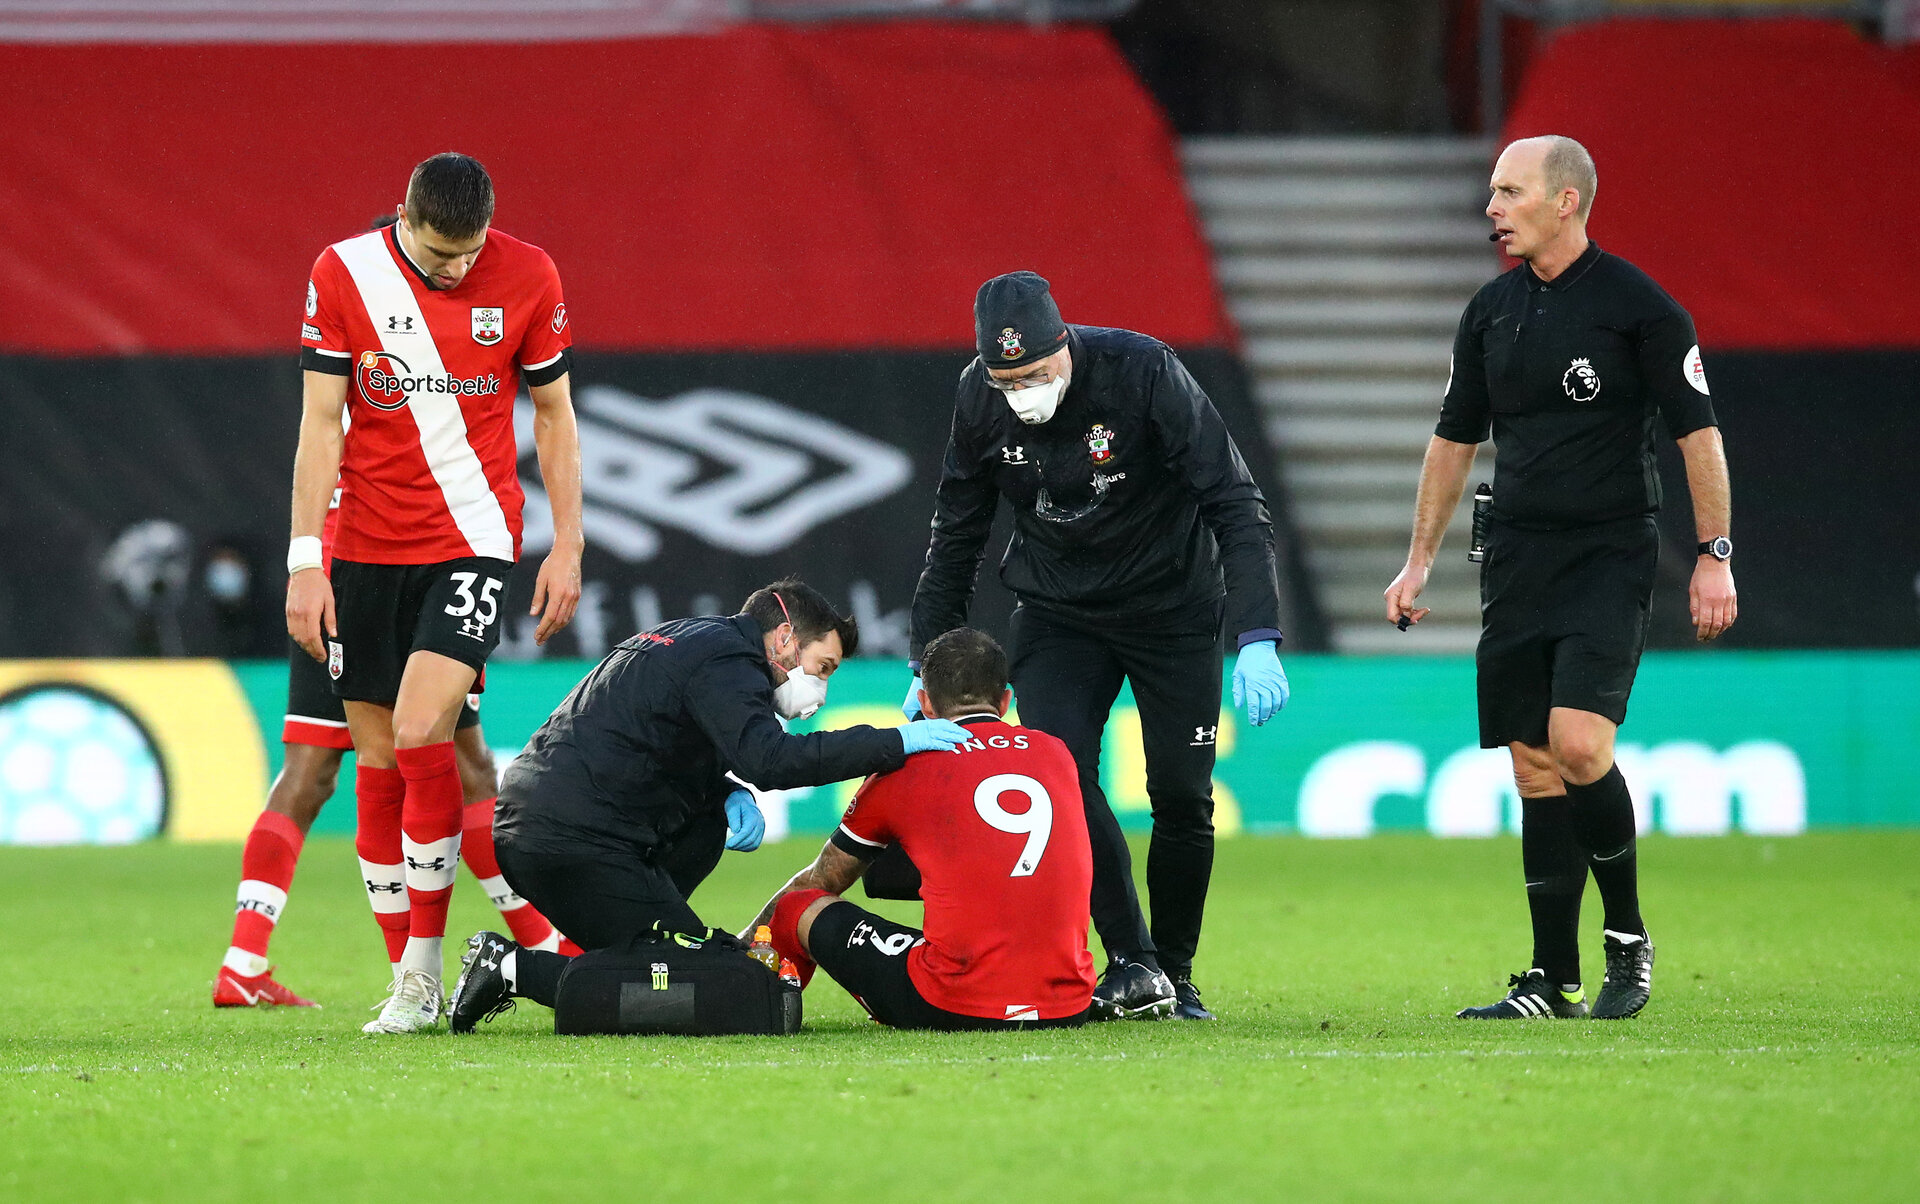 SOUTHAMPTON, ENGLAND - DECEMBER 19: Danny Ings of Southampton receives treatment during the Premier League match between Southampton and Manchester City at St Mary's Stadium on December 19, 2020 in Southampton, England. A limited number of fans (2000) are welcomed back to stadiums to watch elite football across England. This was following easing of restrictions on spectators in tiers one and two areas only. (Photo by Matt Watson/Southampton FC via Getty Images)